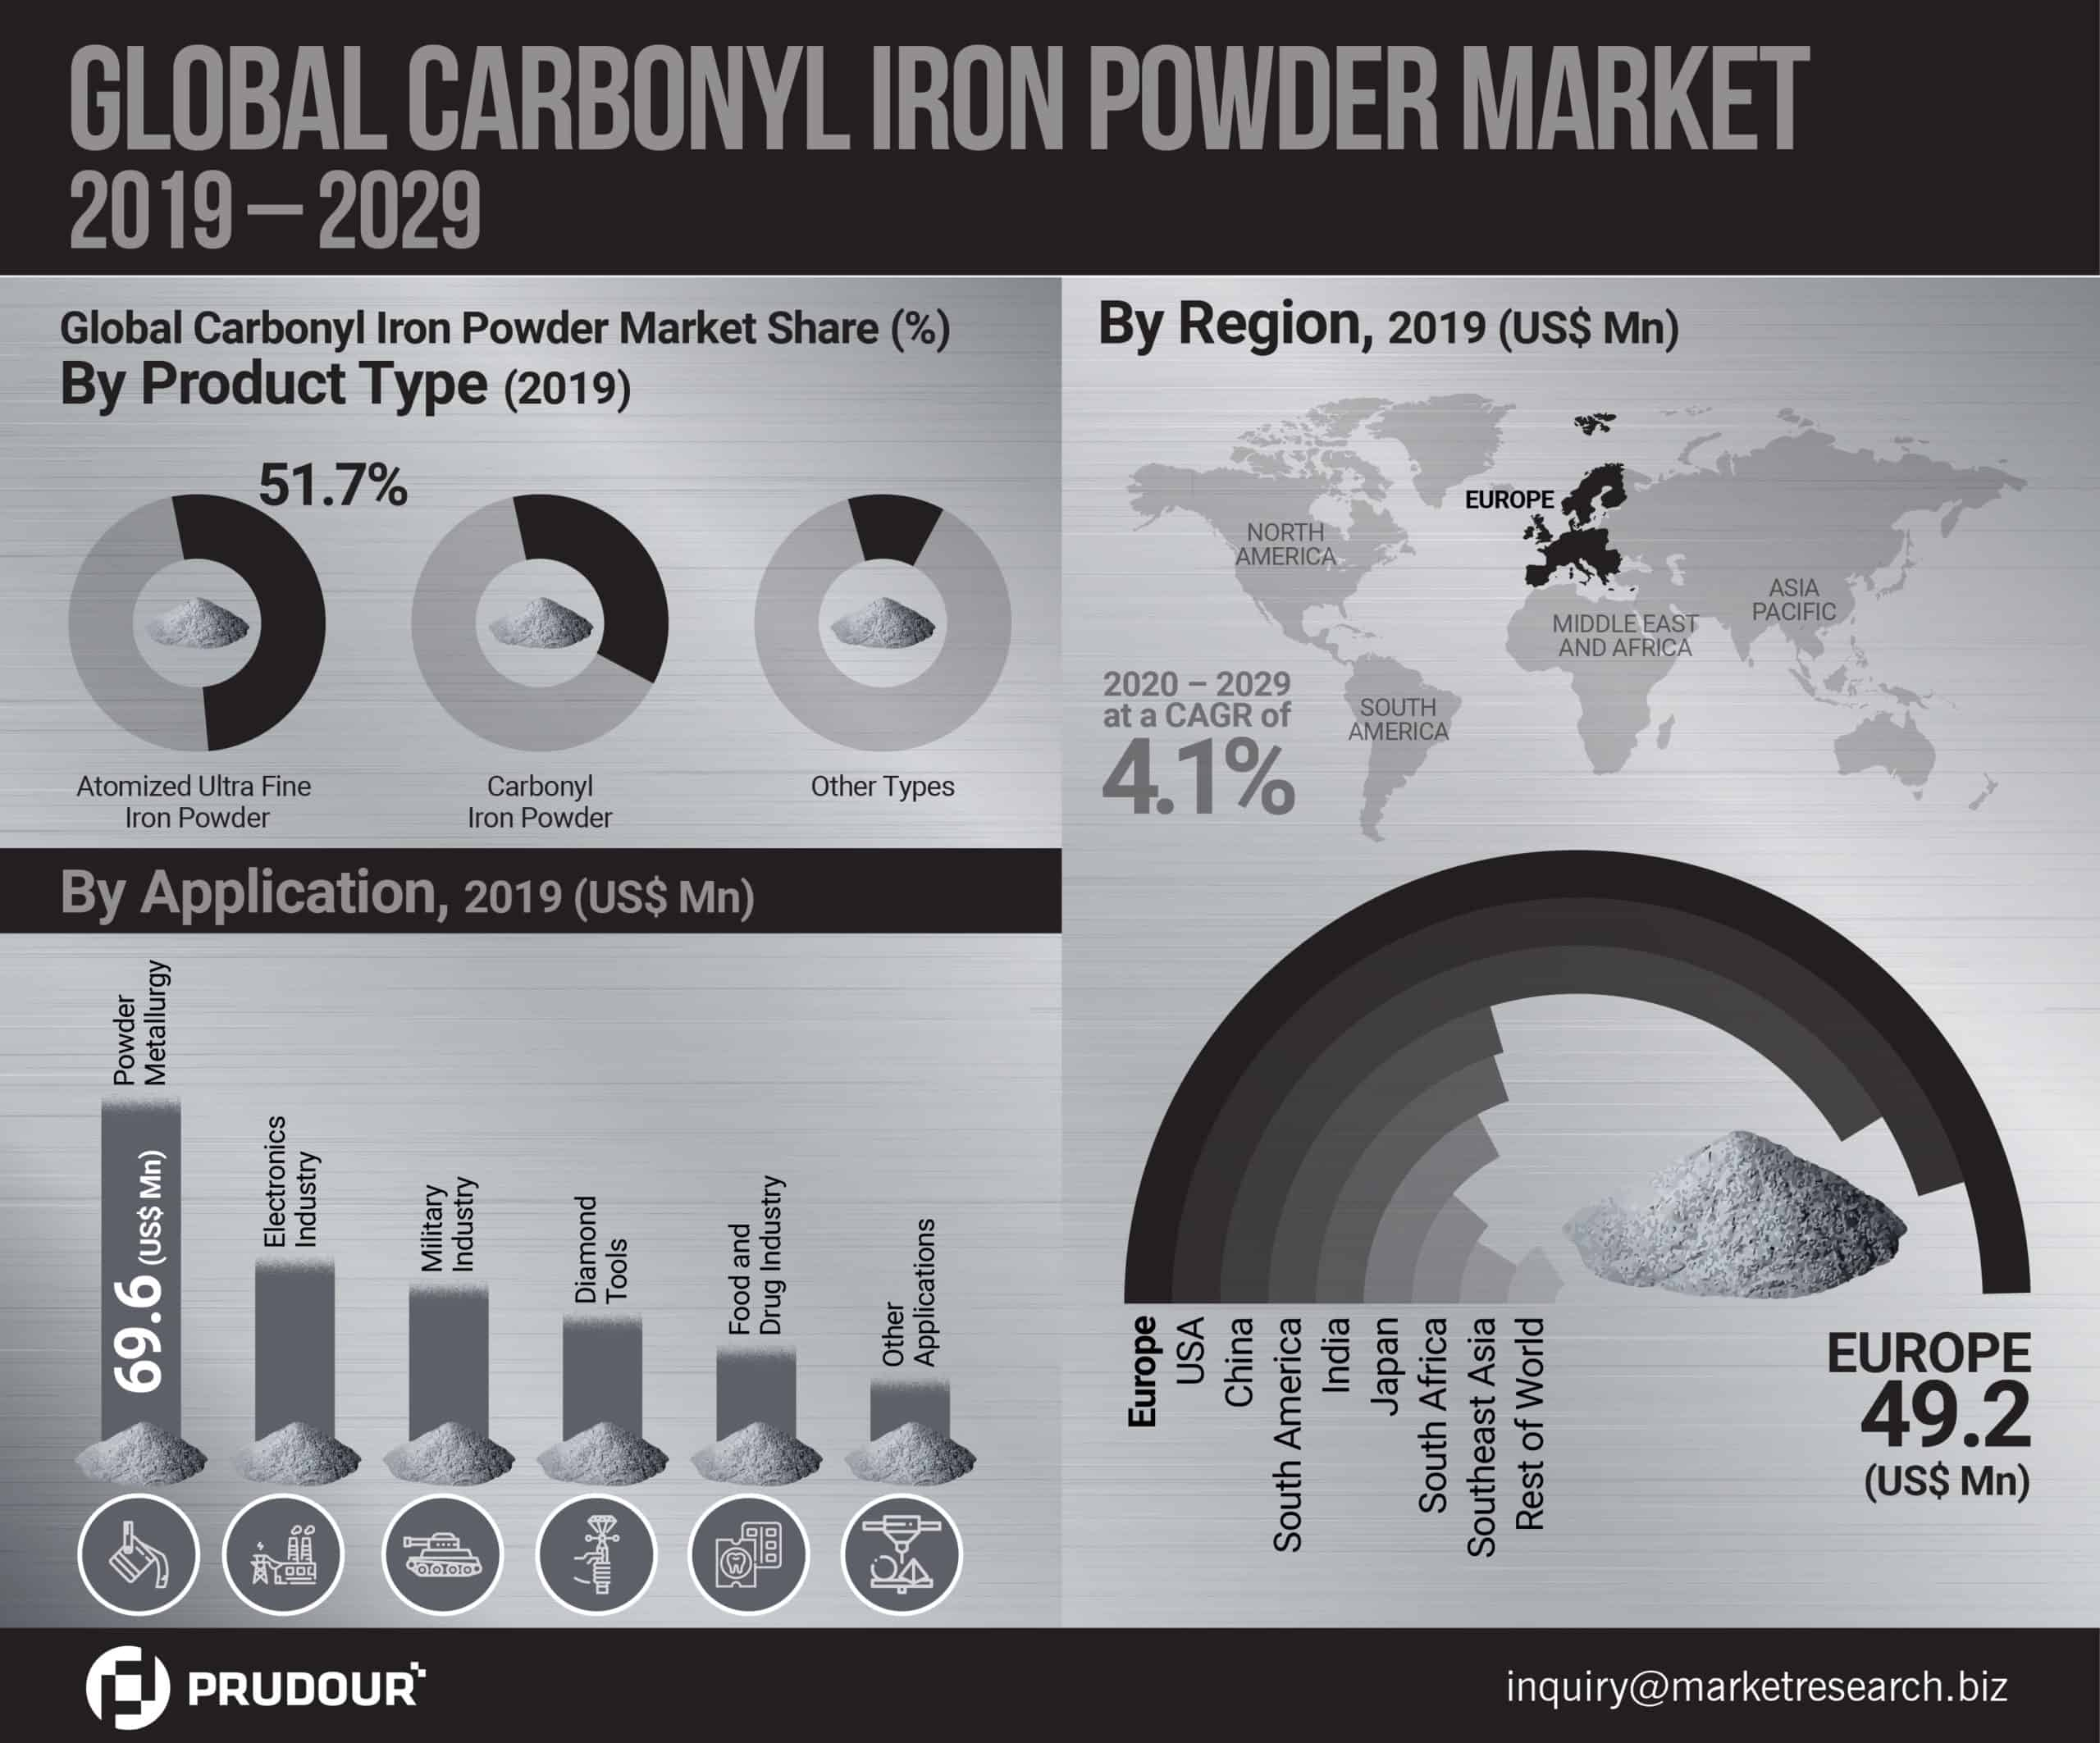 Carbonyl Iron Powder Market